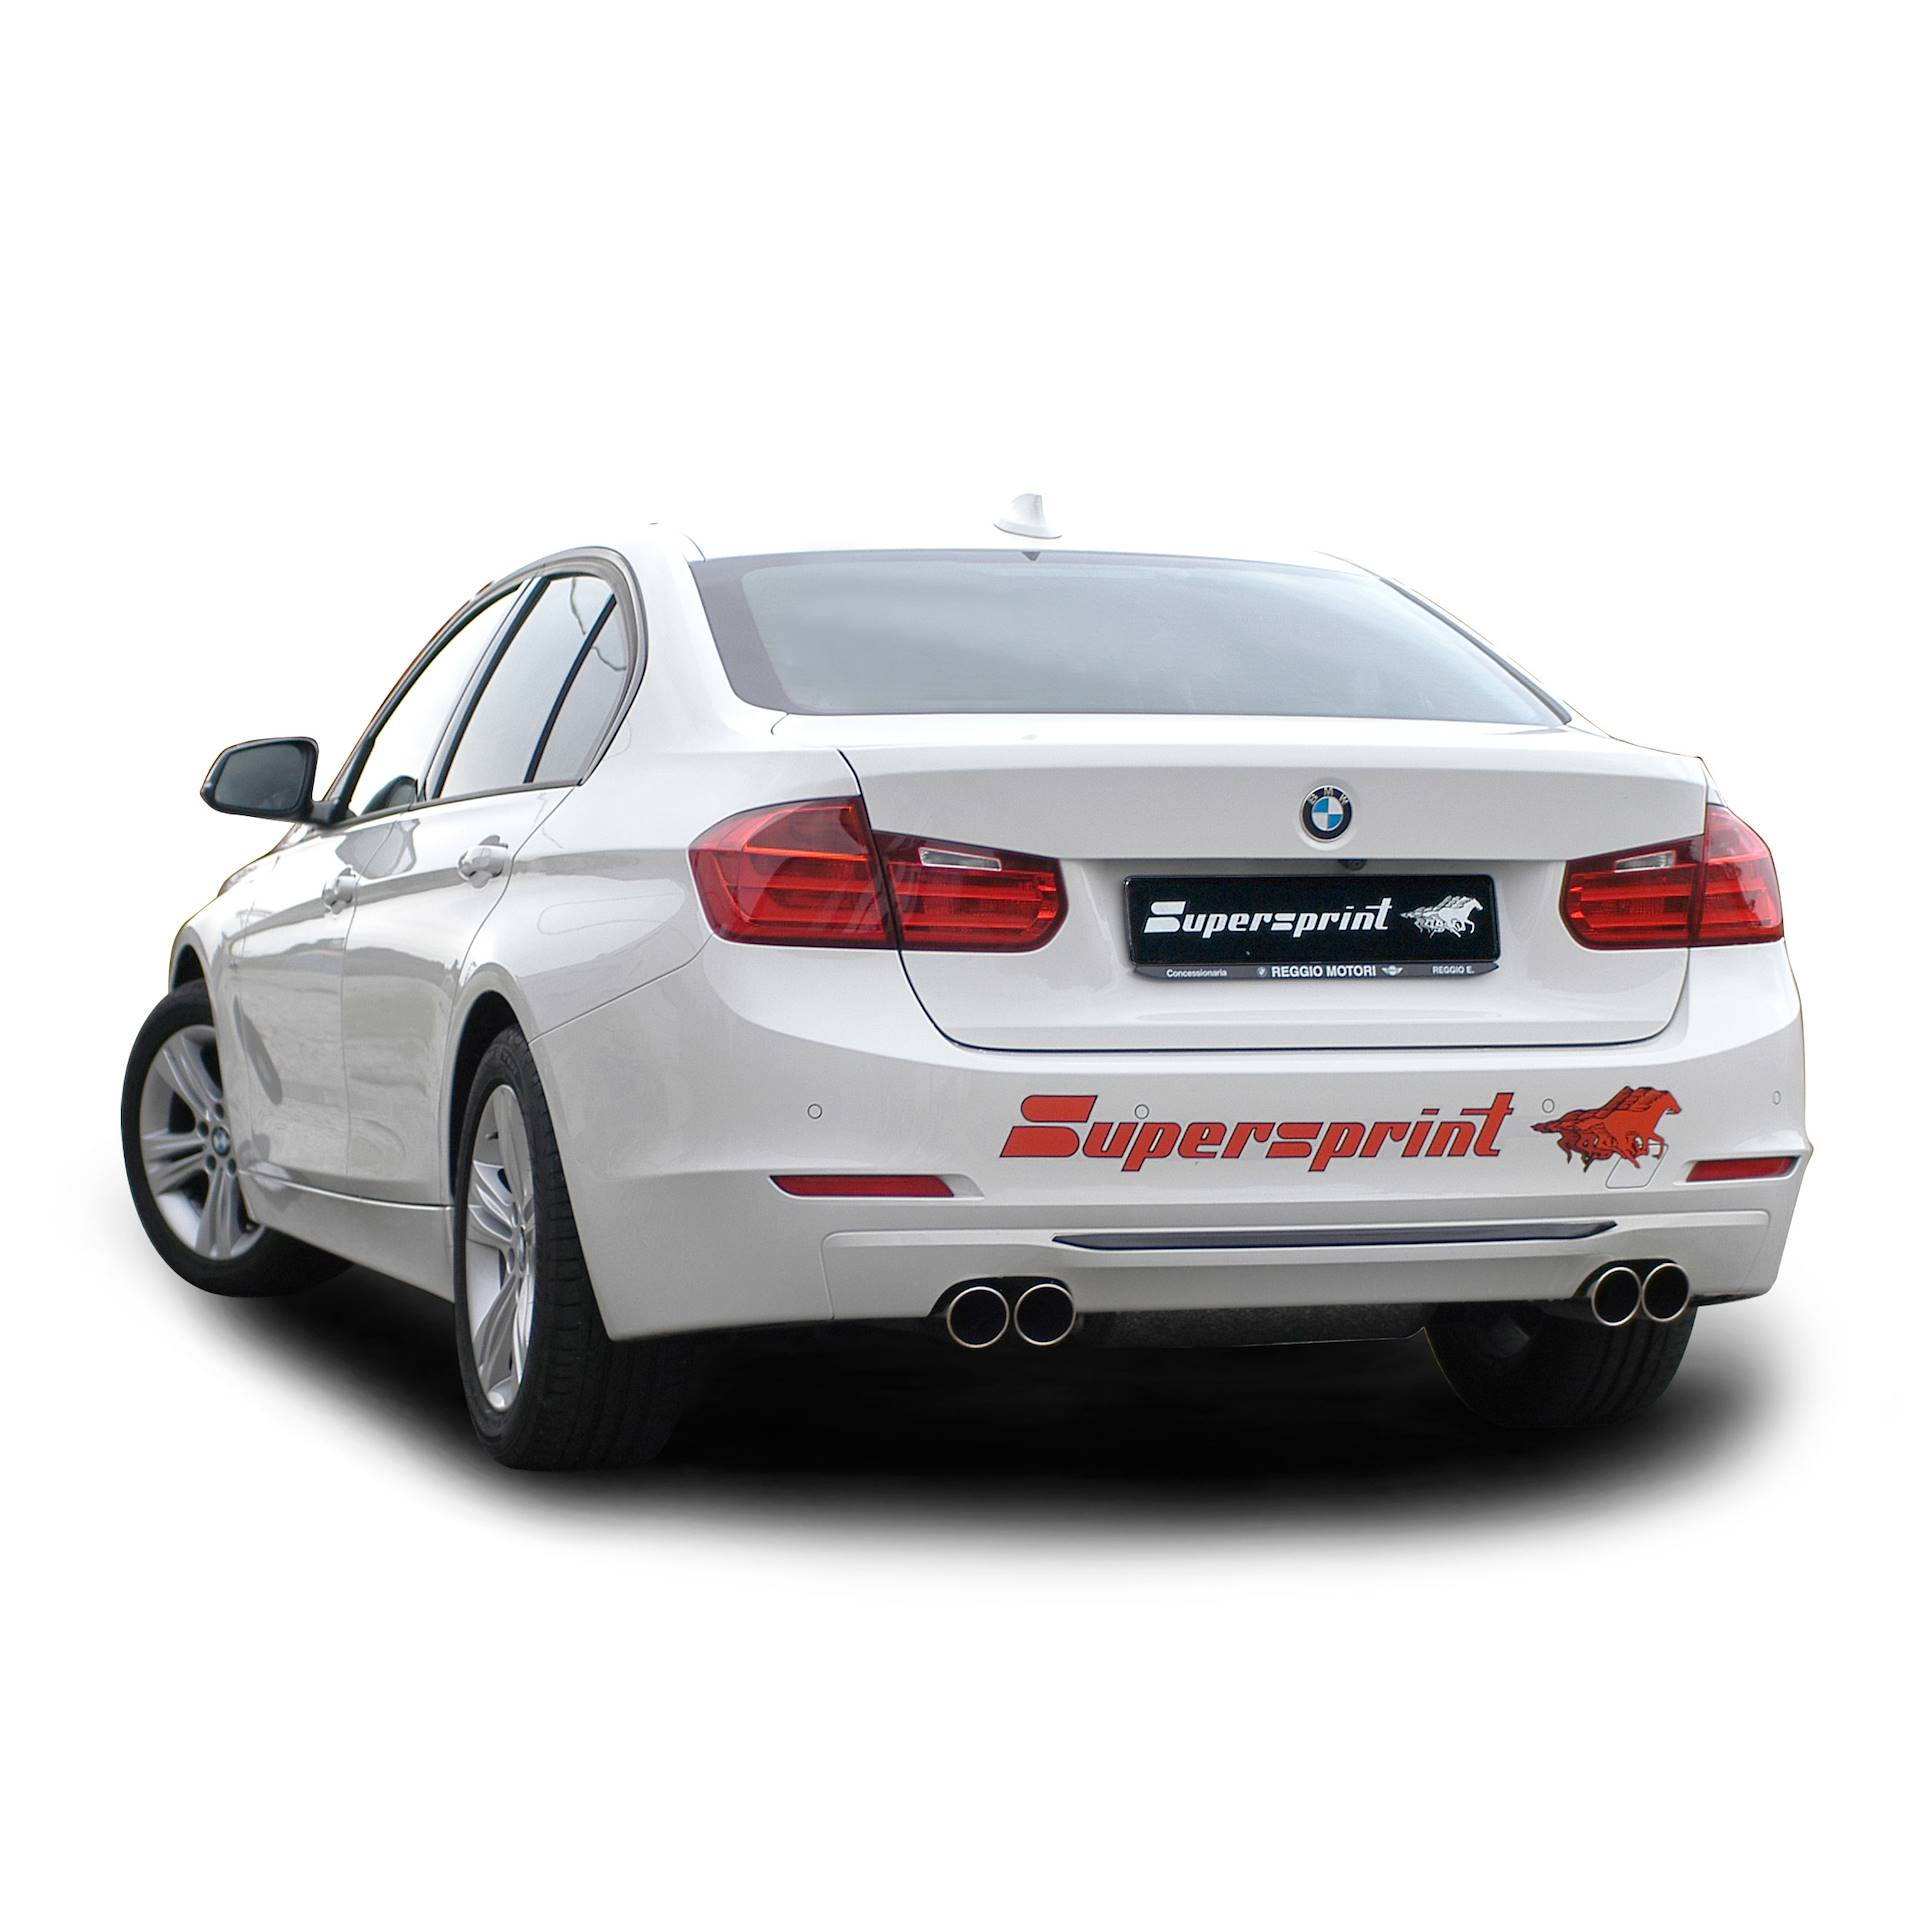 BMW - BMW F30 (Sedan) 320i xDrive 2.0T (184 Hp) 2012 ->